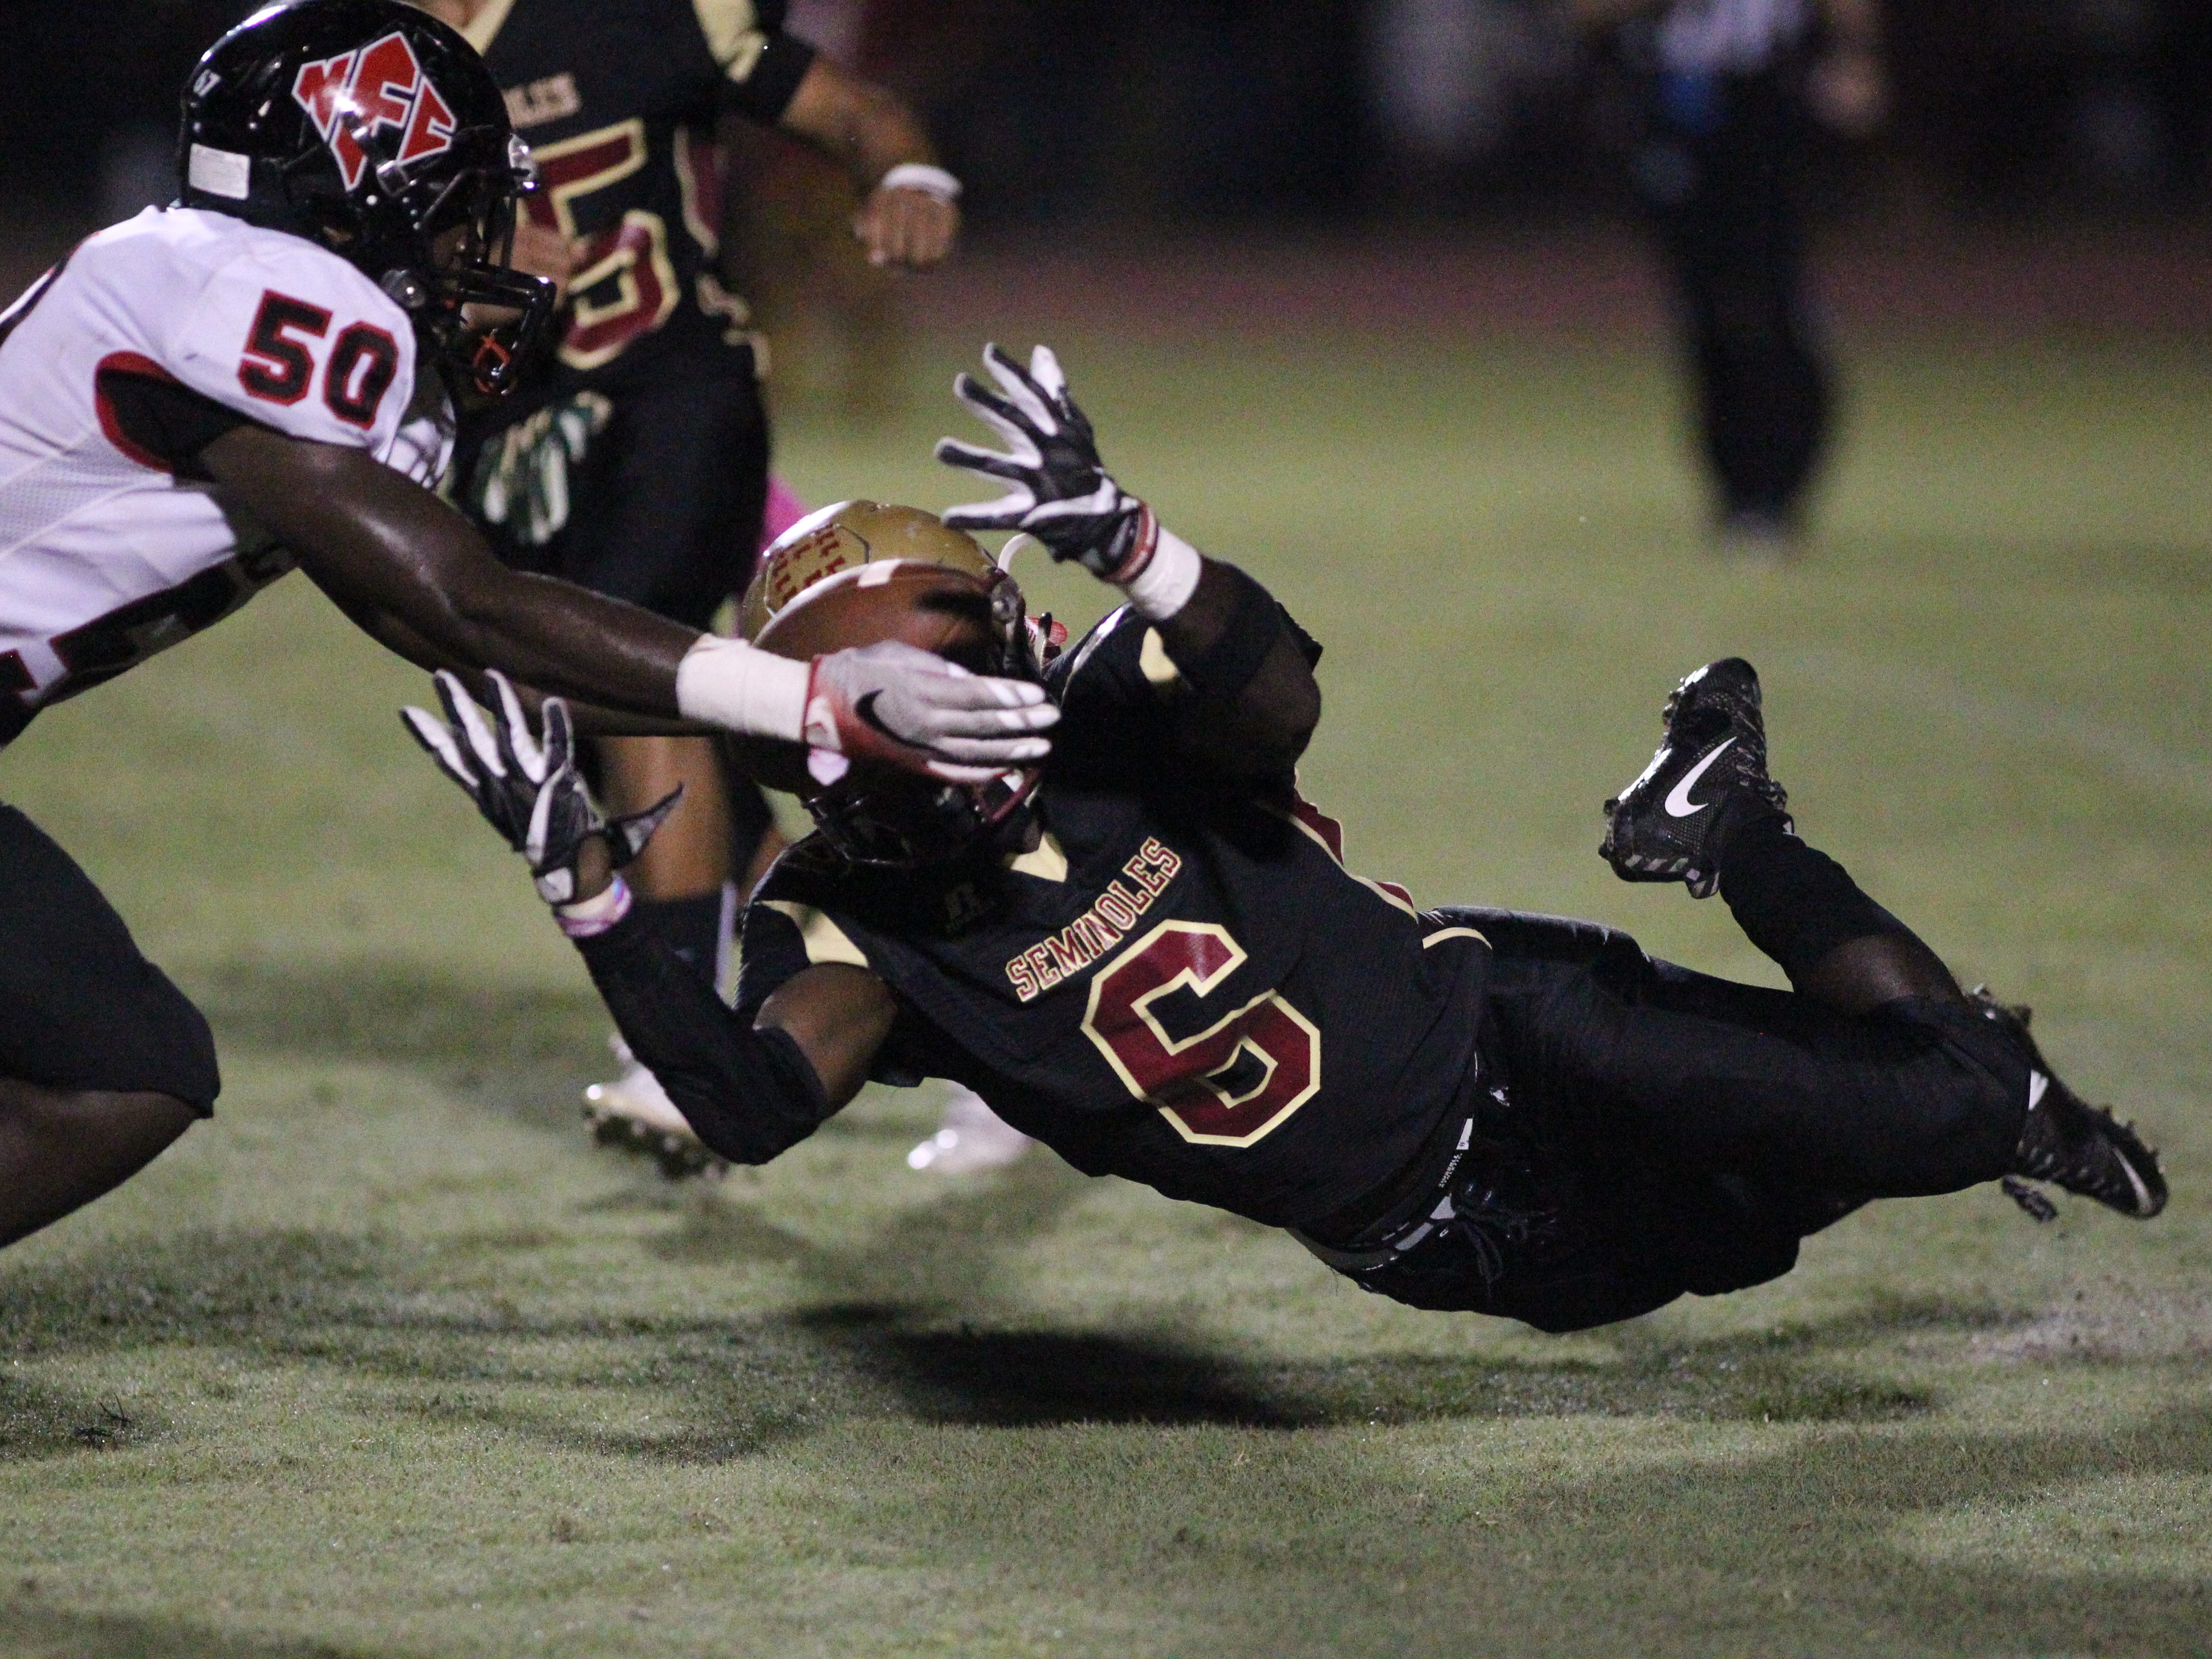 NFC's Raymond Jackson hits Florida High's Alfred Menjor before Menjor can recover a fumble, leading to a turnover.